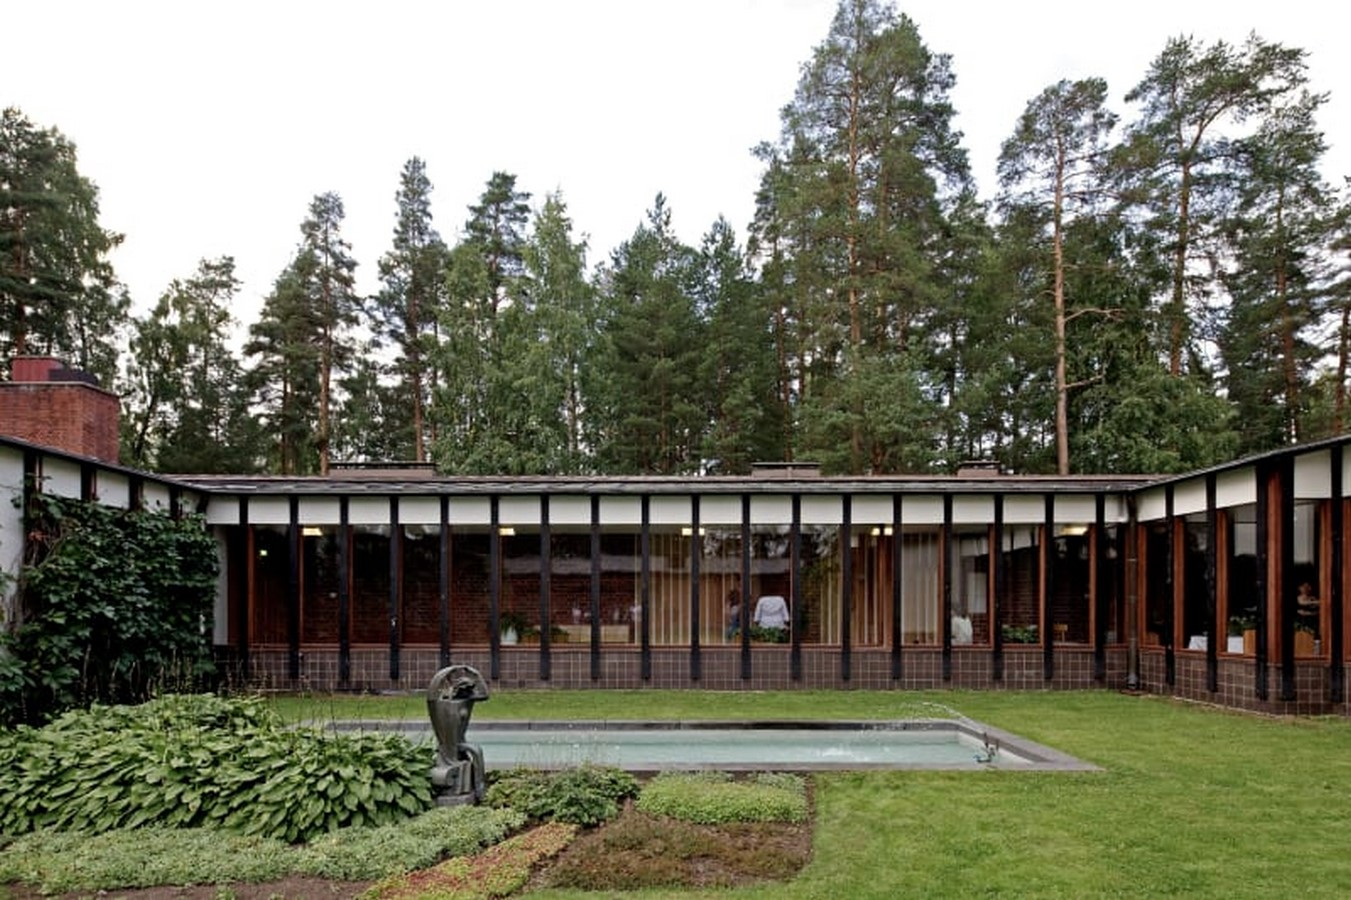 Saynatsalo Town Hall by Alvar Aalto: Collaboration in Architecture - Sheet5